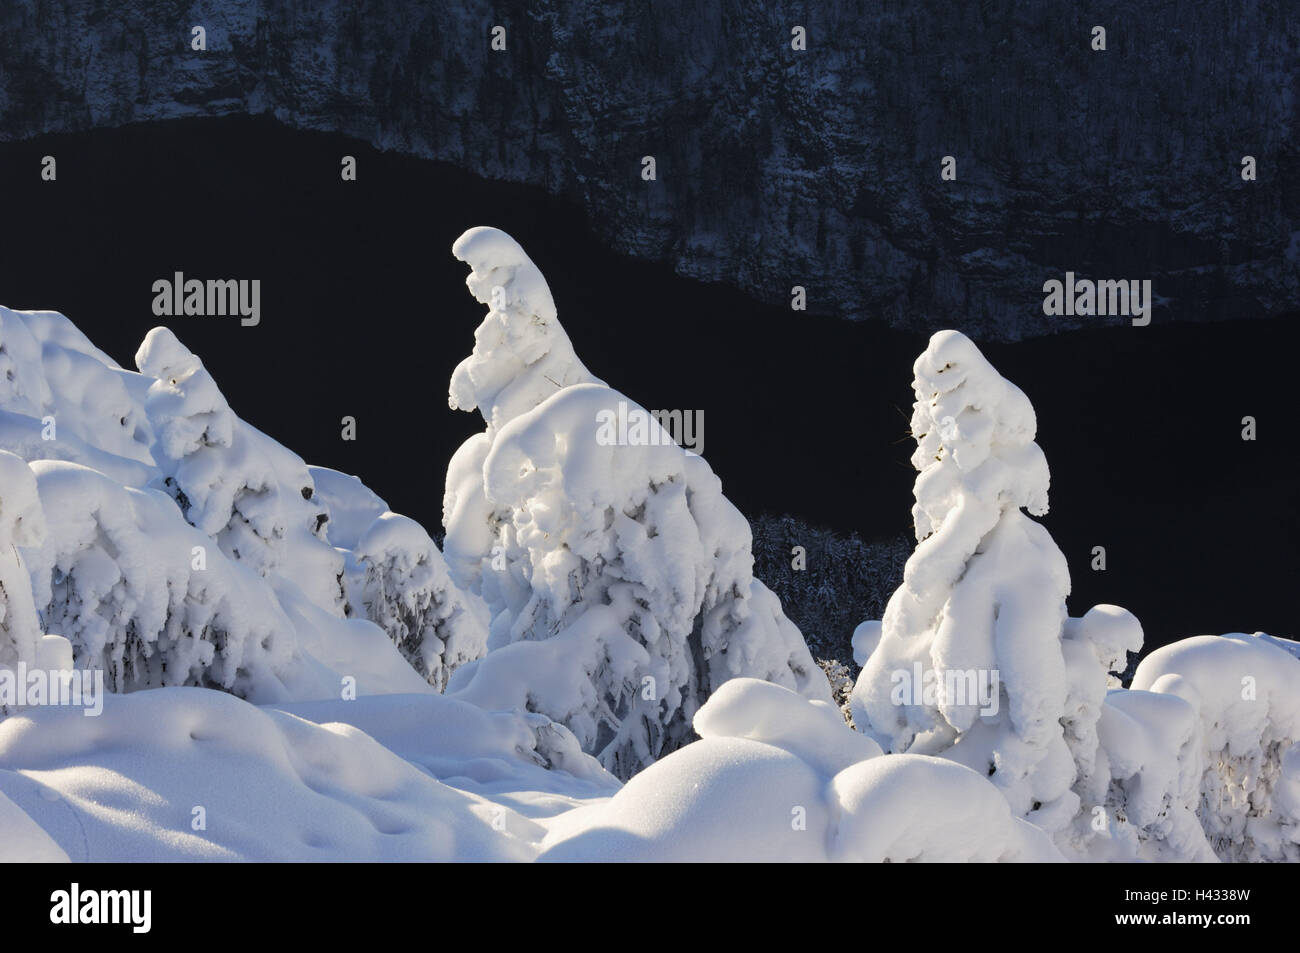 Germany, Berchtesgaden, Jenner, conifers, snowy, the Königssee, winter scenery - Stock Image